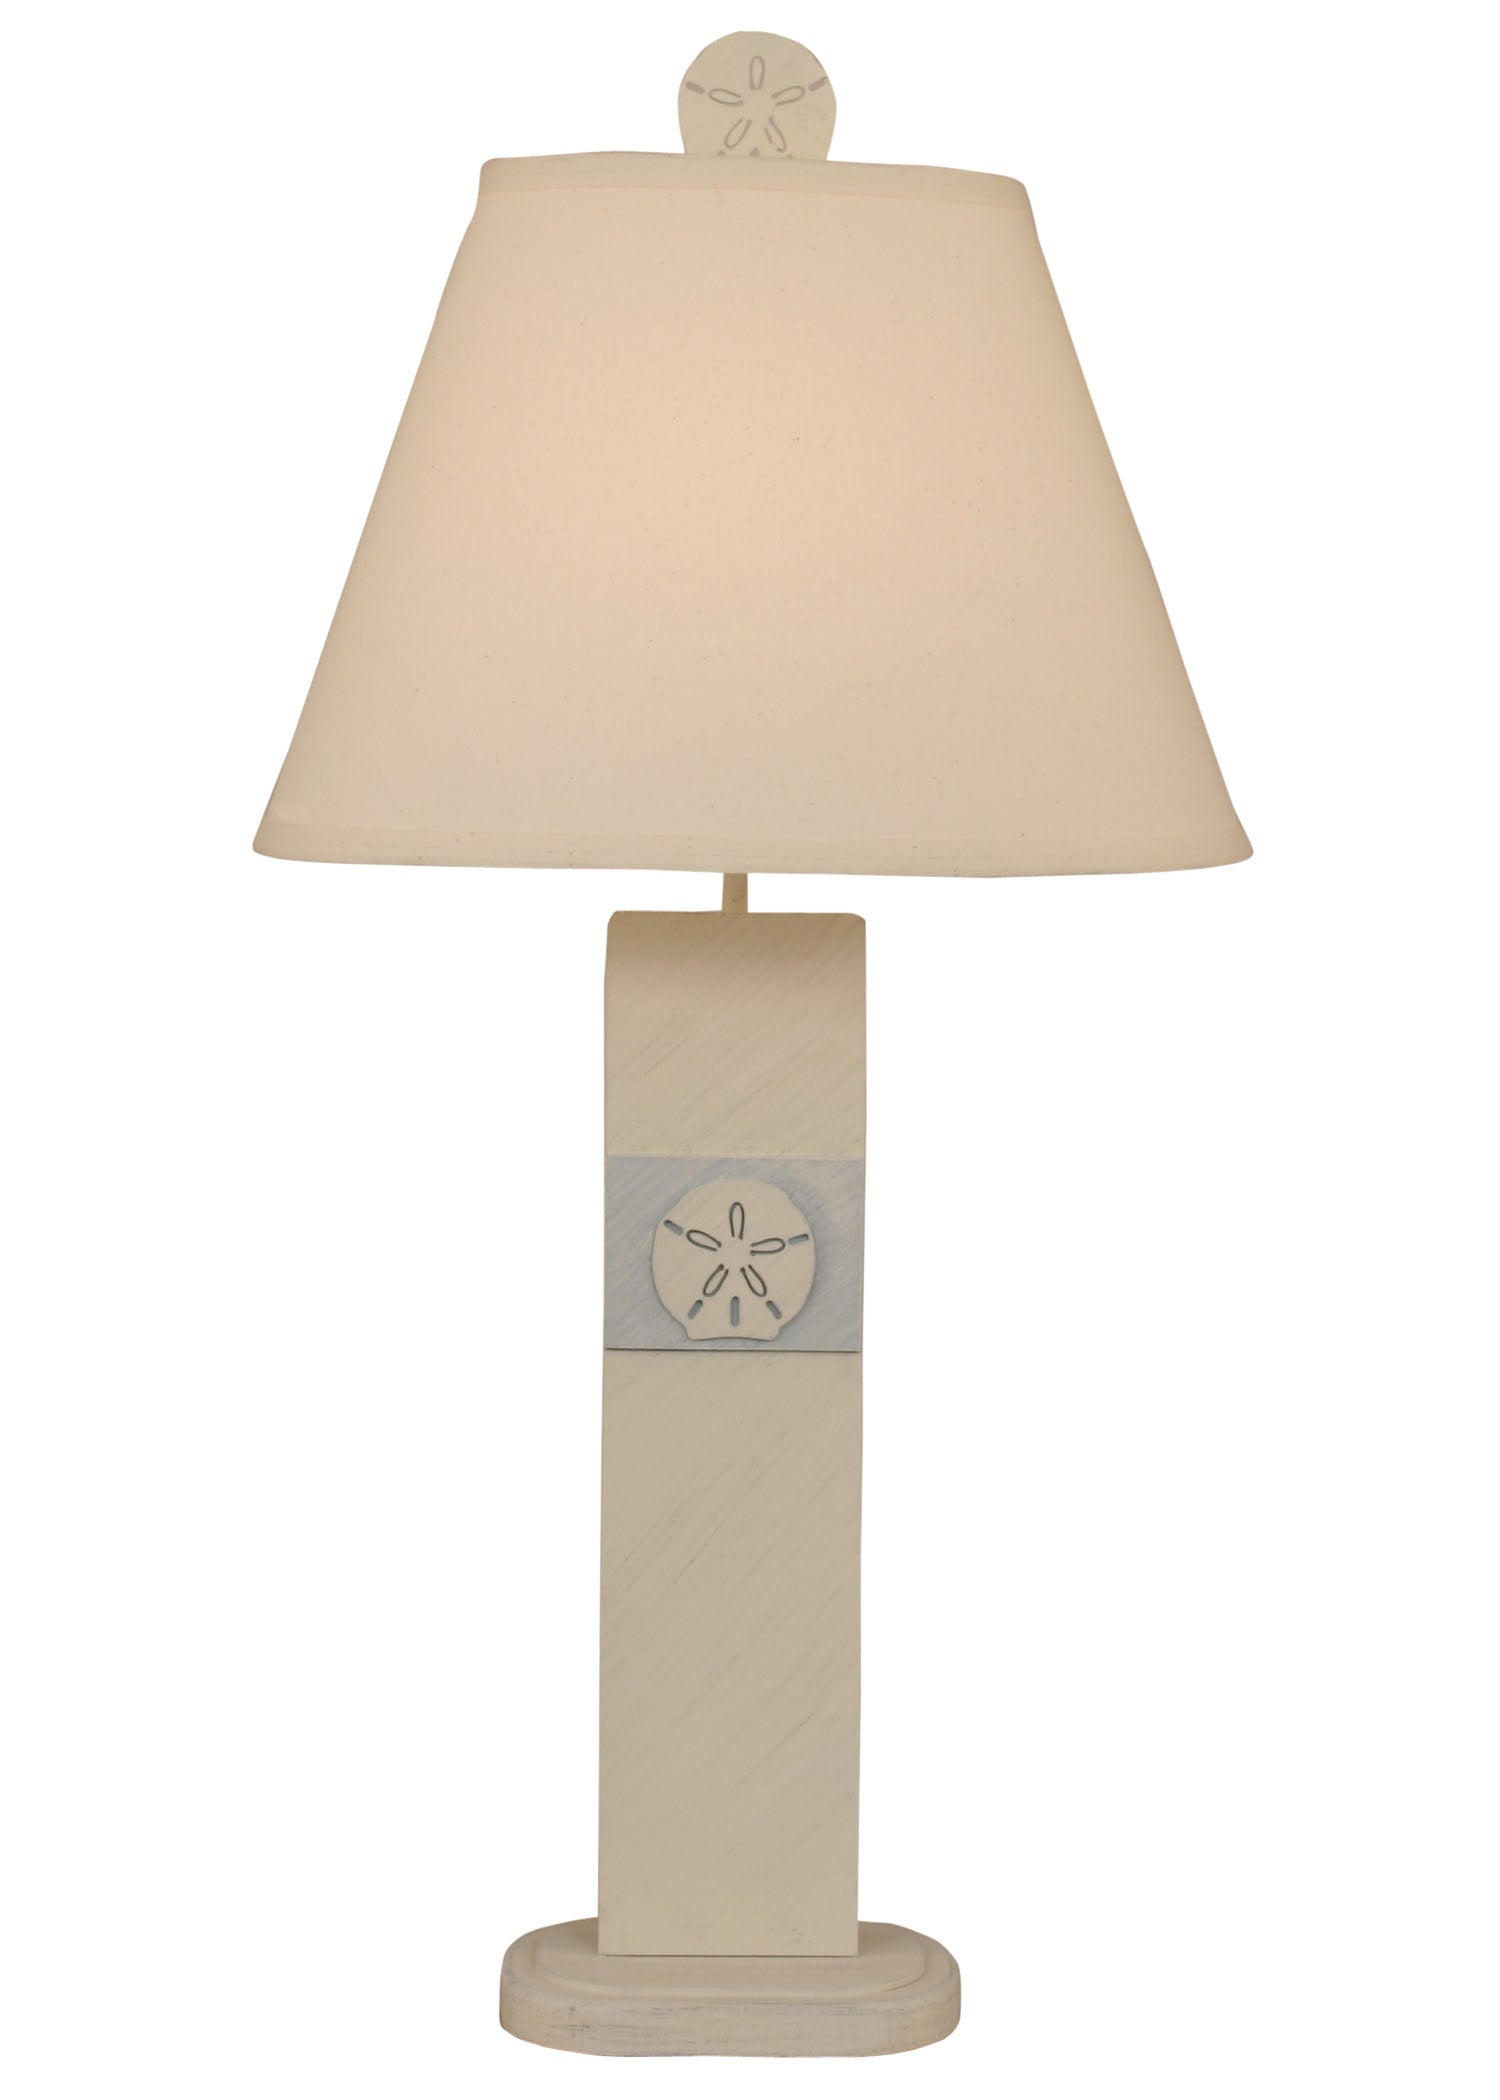 Shoreline Haze/Sea Side Villa Sand Dollar Panel Table Lamp - Coast Lamp Shop